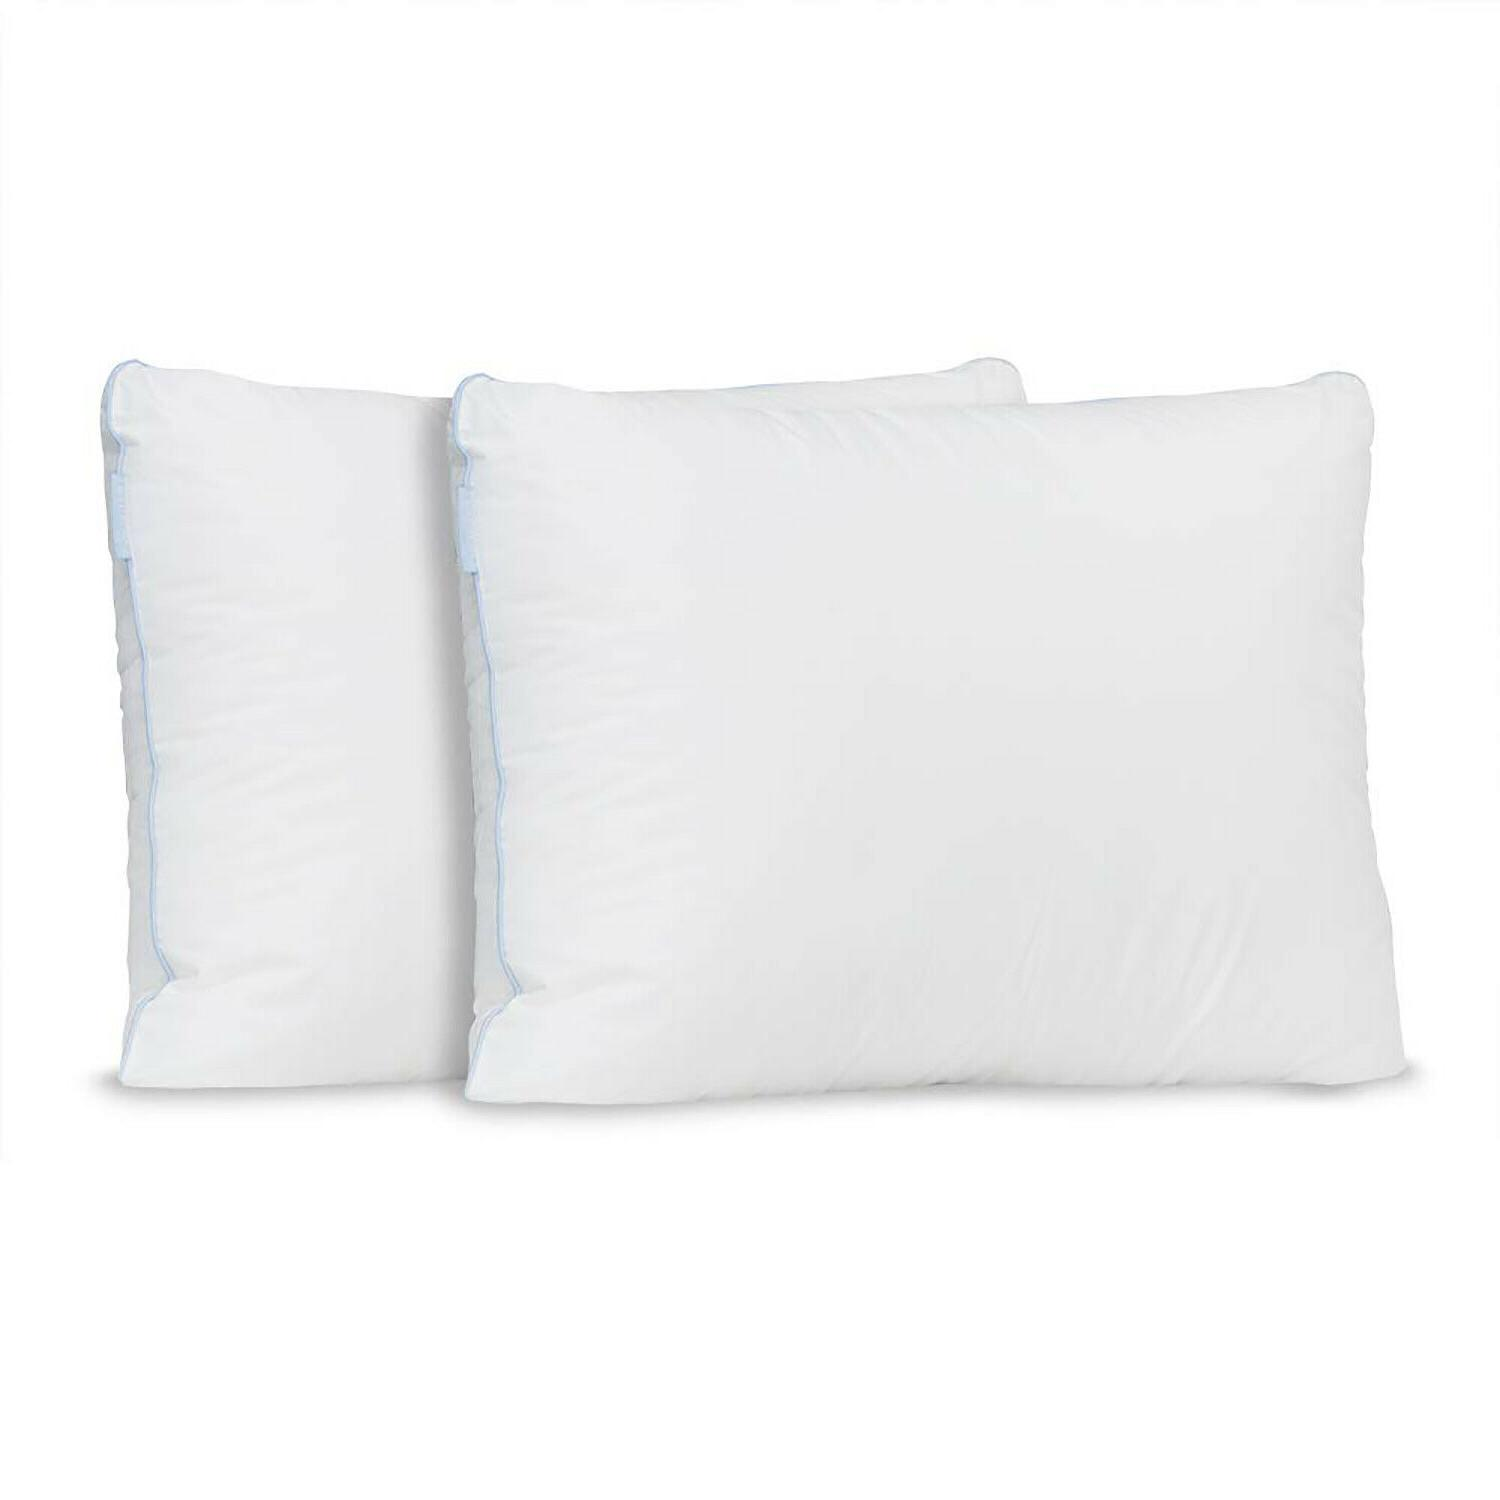 Thick Cooling Extra Plush 2 Pack New